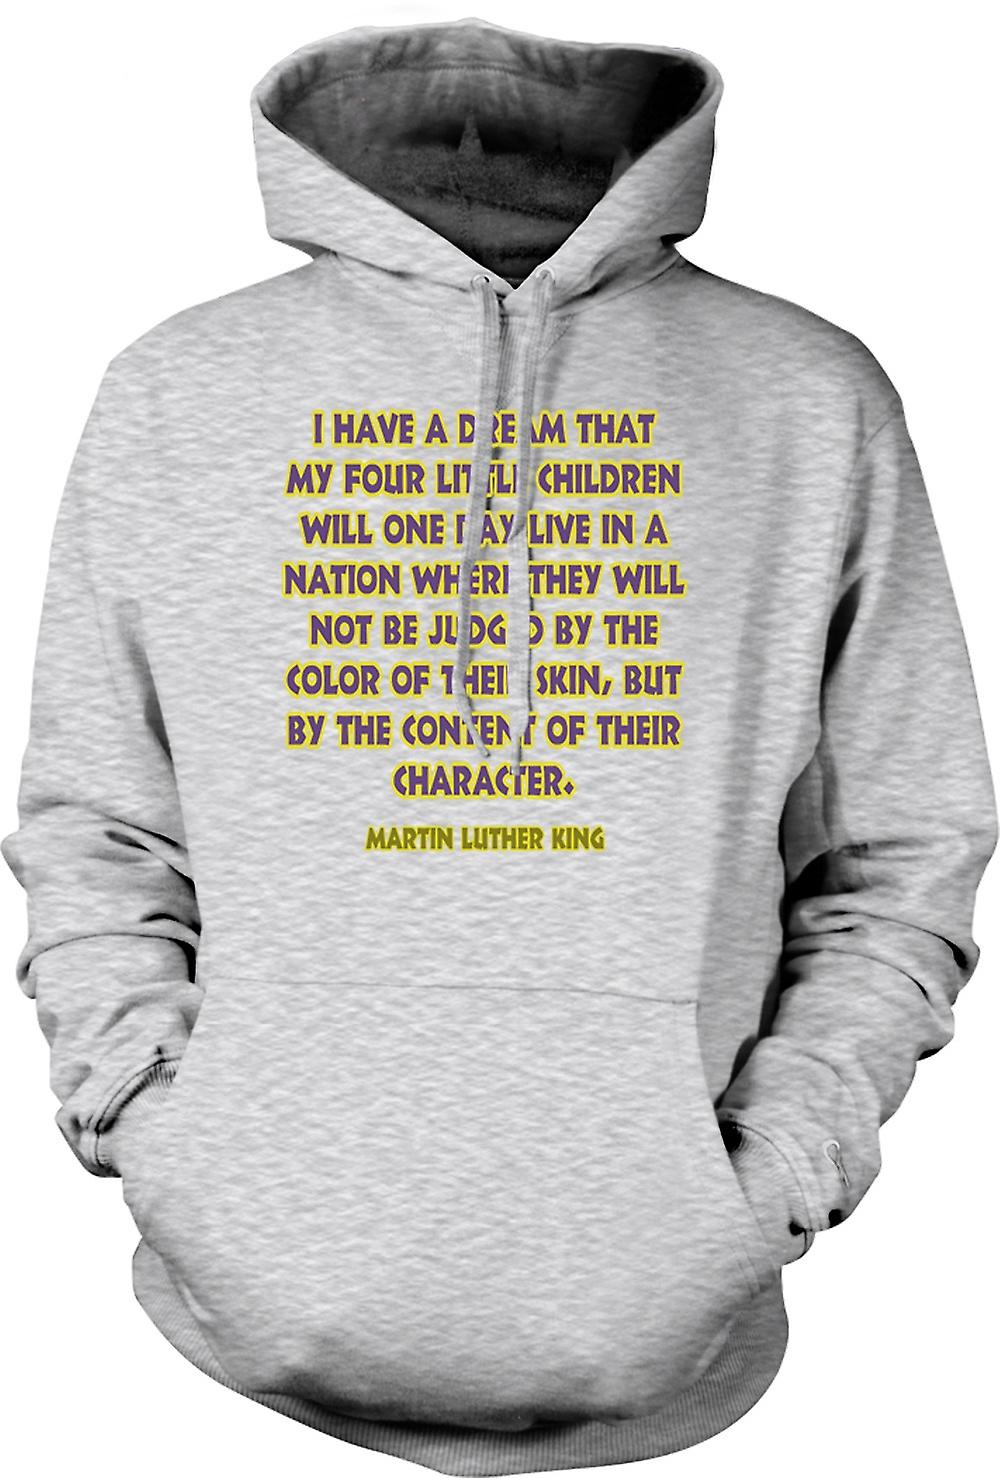 Mens Hoodie - I Have A Dream That My 4 Children - Martin L King